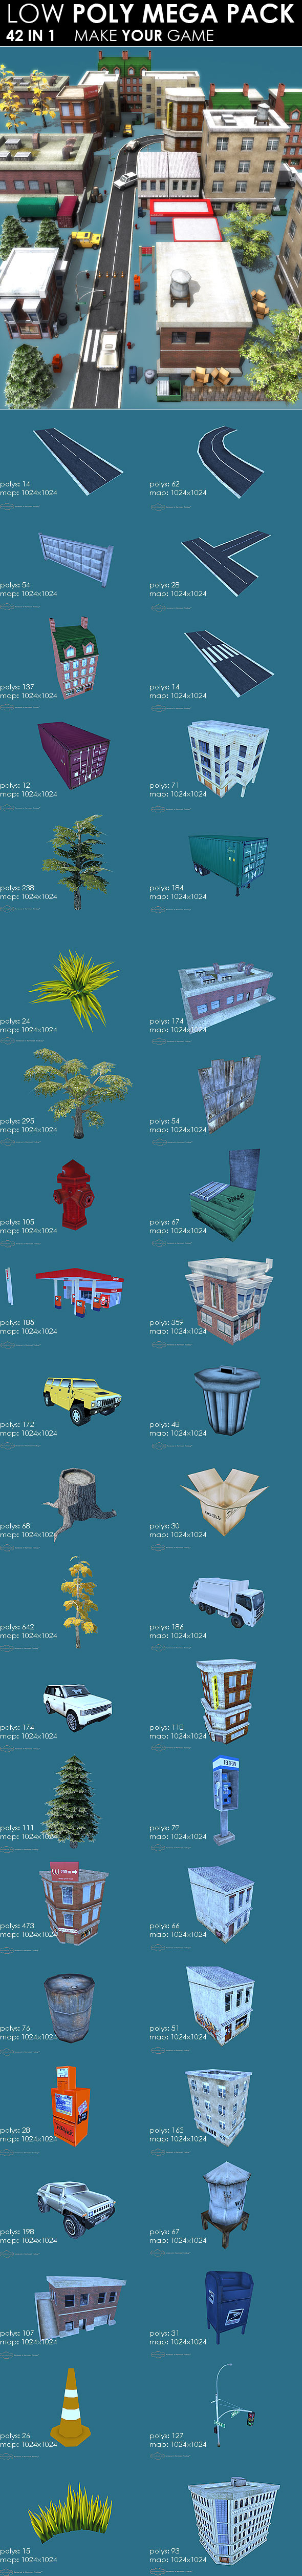 3DOcean Low poly City Megapack 42 models 752954